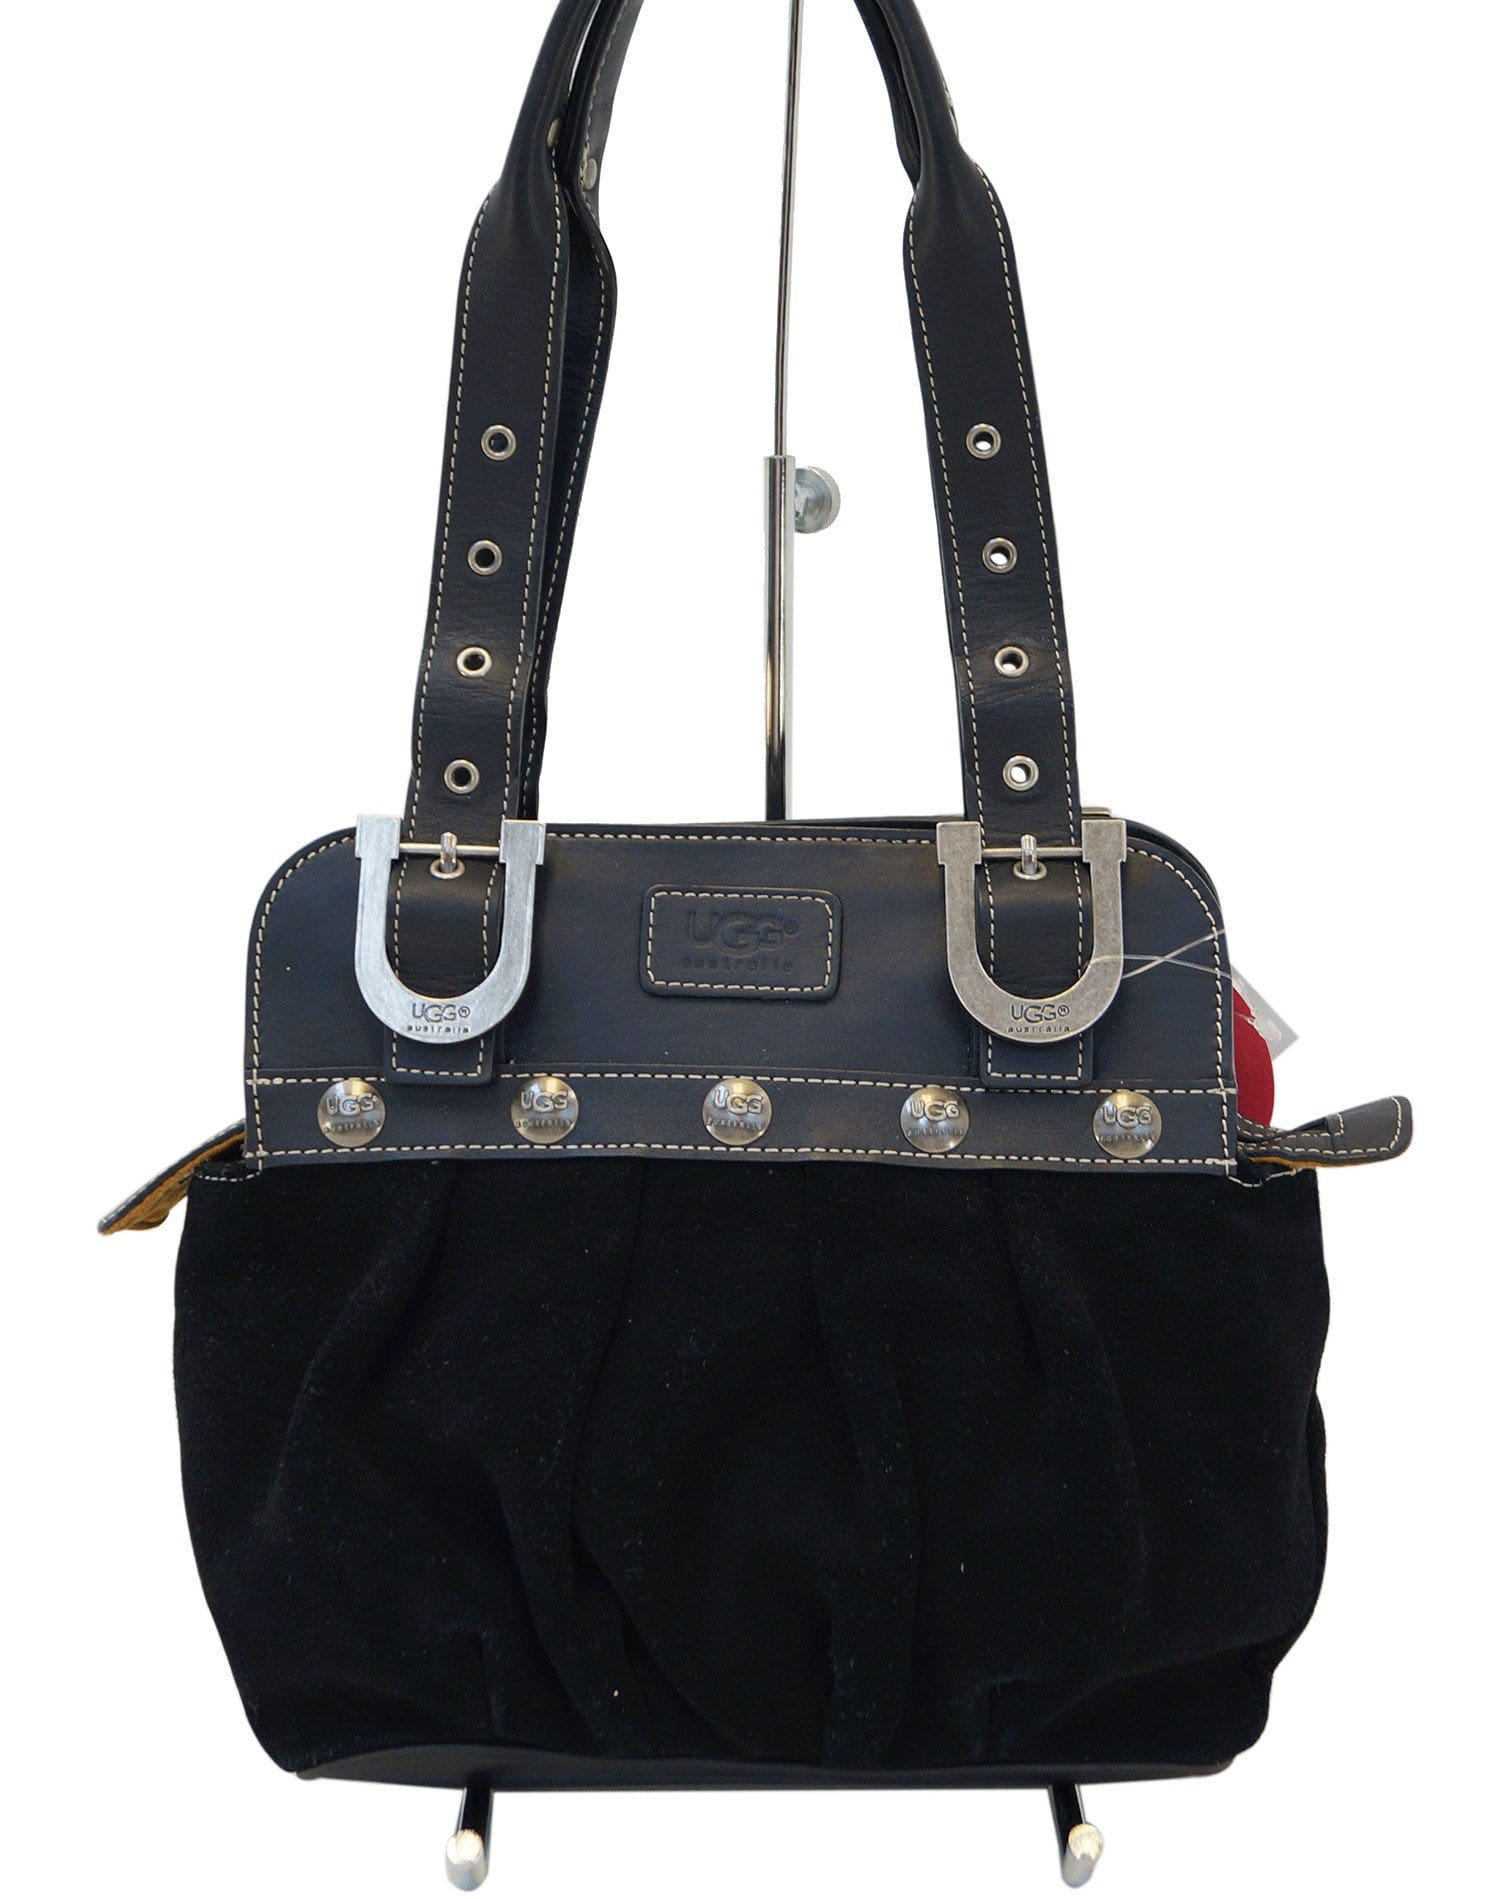 a6cd9d64c02 UGG Australia Black Suede Leather Shoulder Bag - Sale